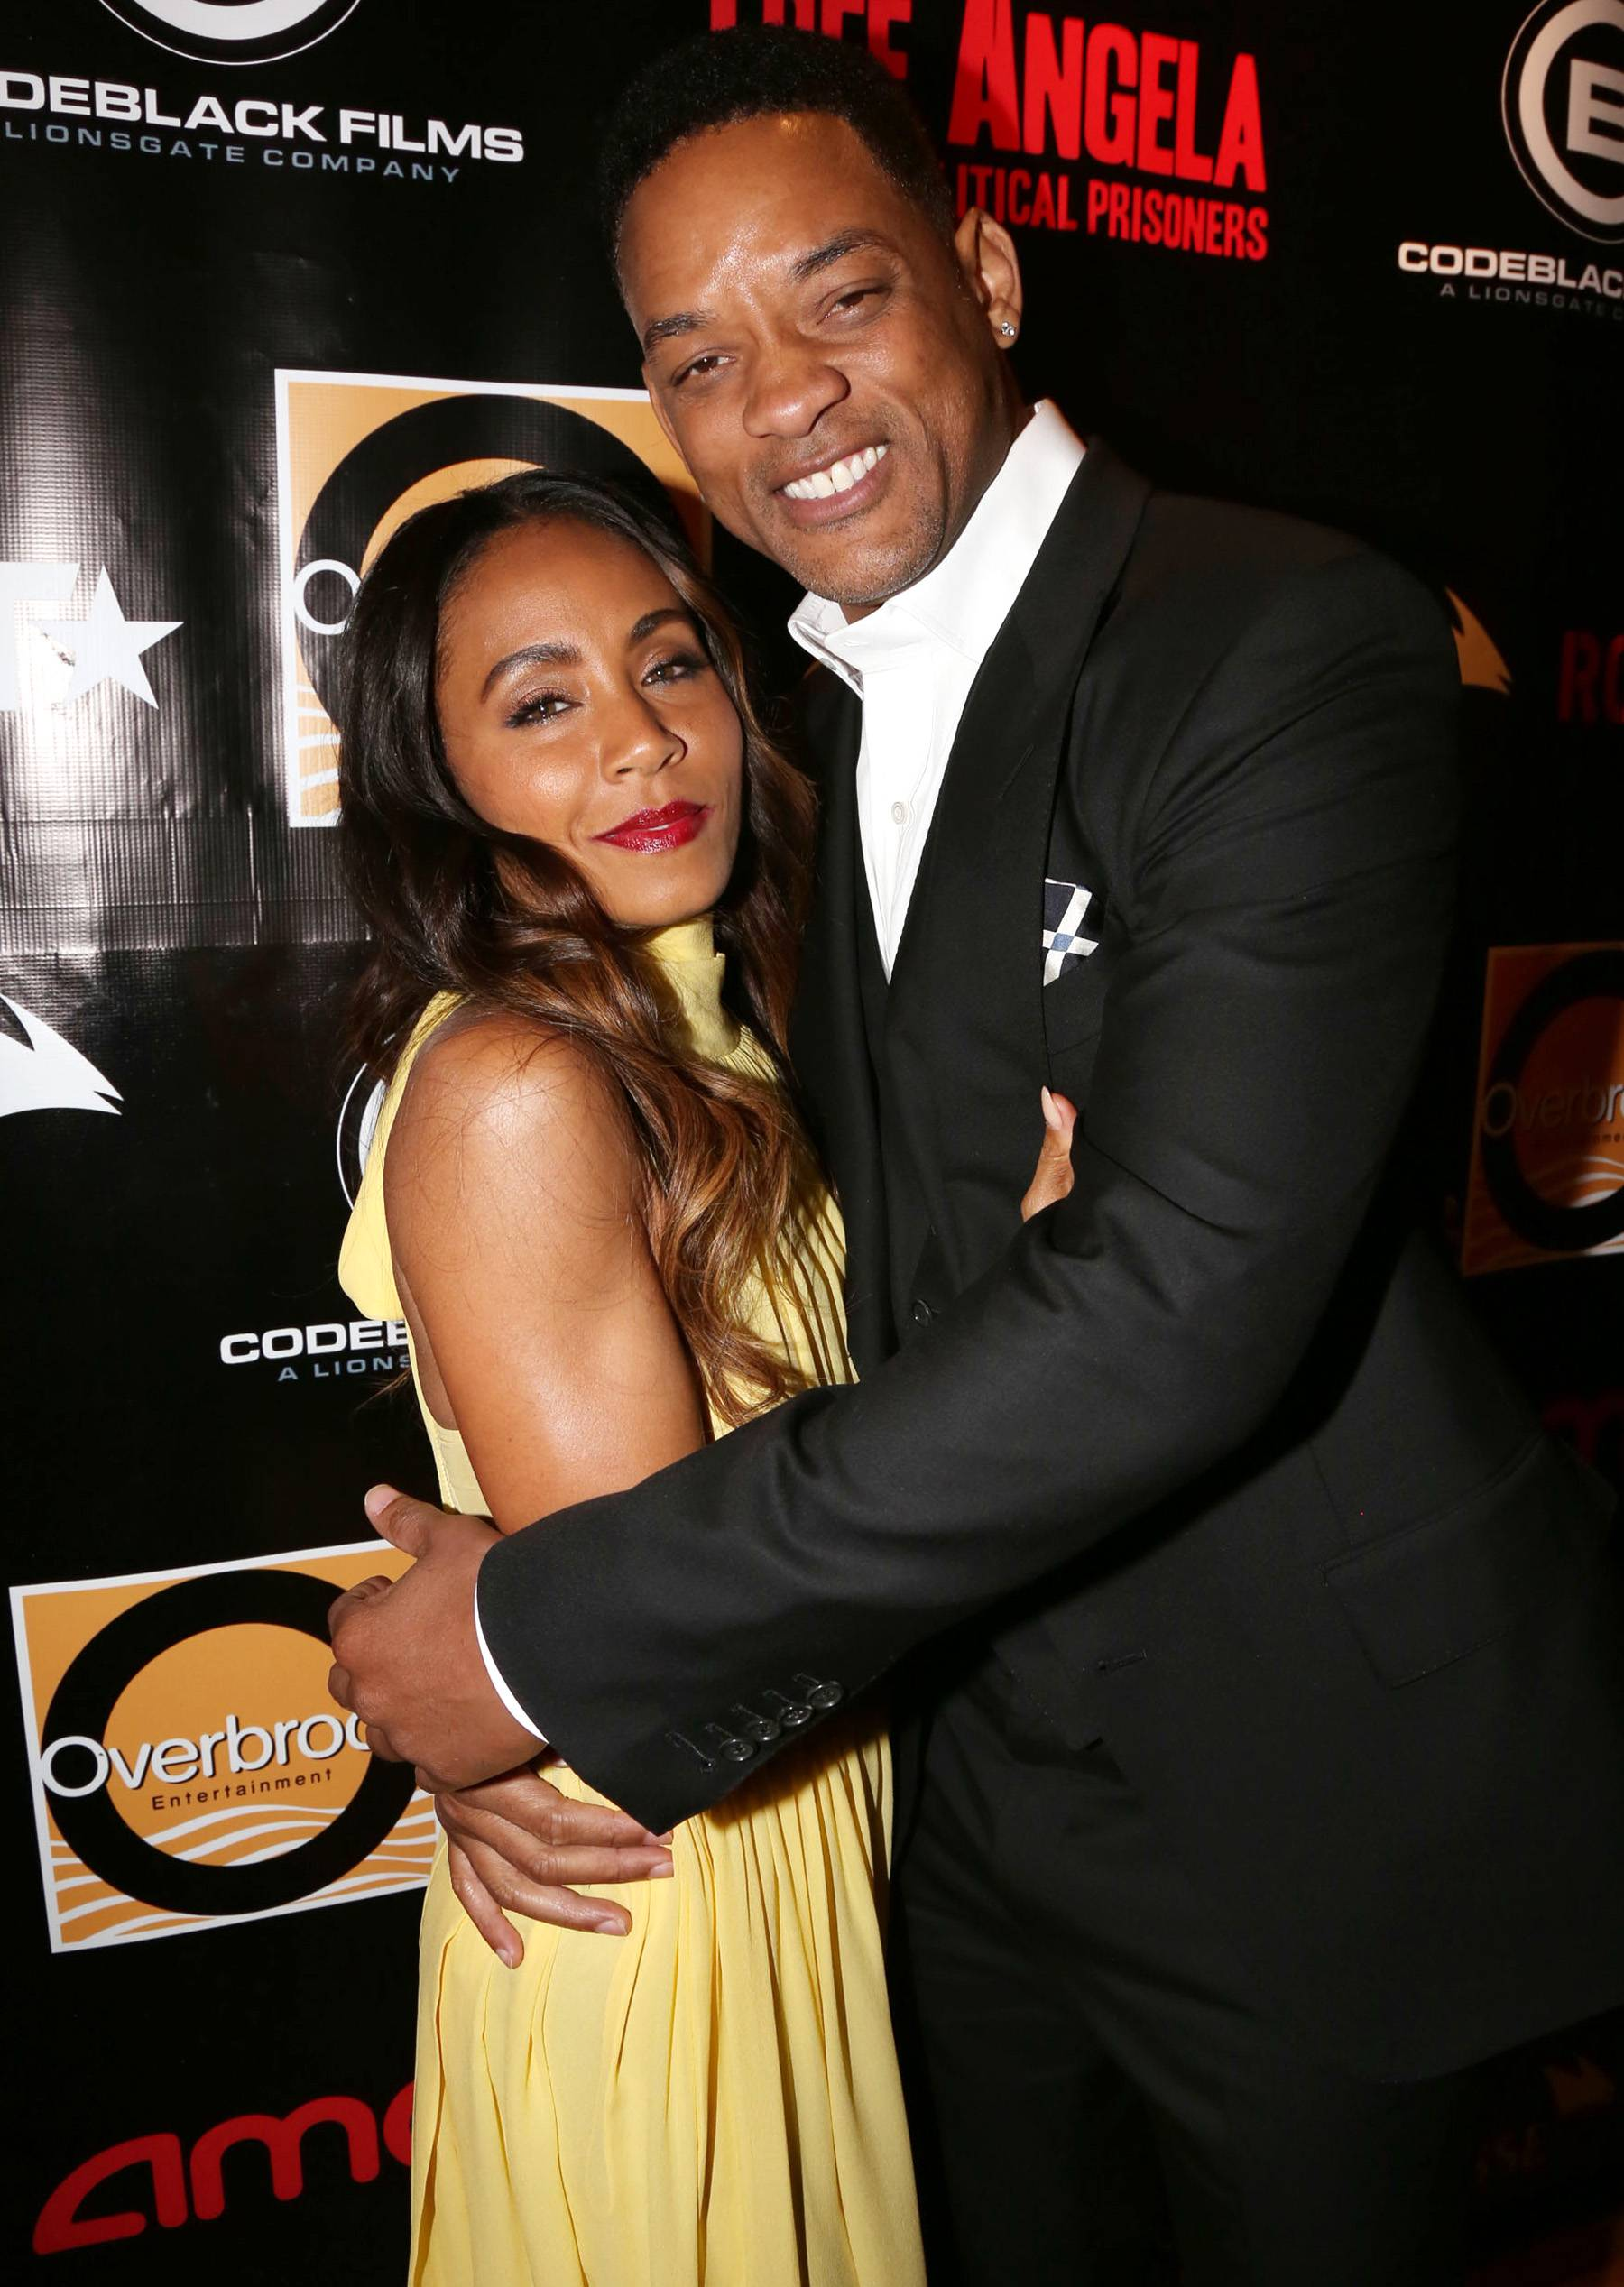 Will Smith and Jada Pinkett Smith - Hollywood's most rock-solid couple has been dogged by divorce rumors all year long. To shut up the skeptics who have them on split watch, we'd shell out for a beautiful vow-renewal ceremony so they can declare their love anew.   (Photo: Johnny Nunez/WireImage)